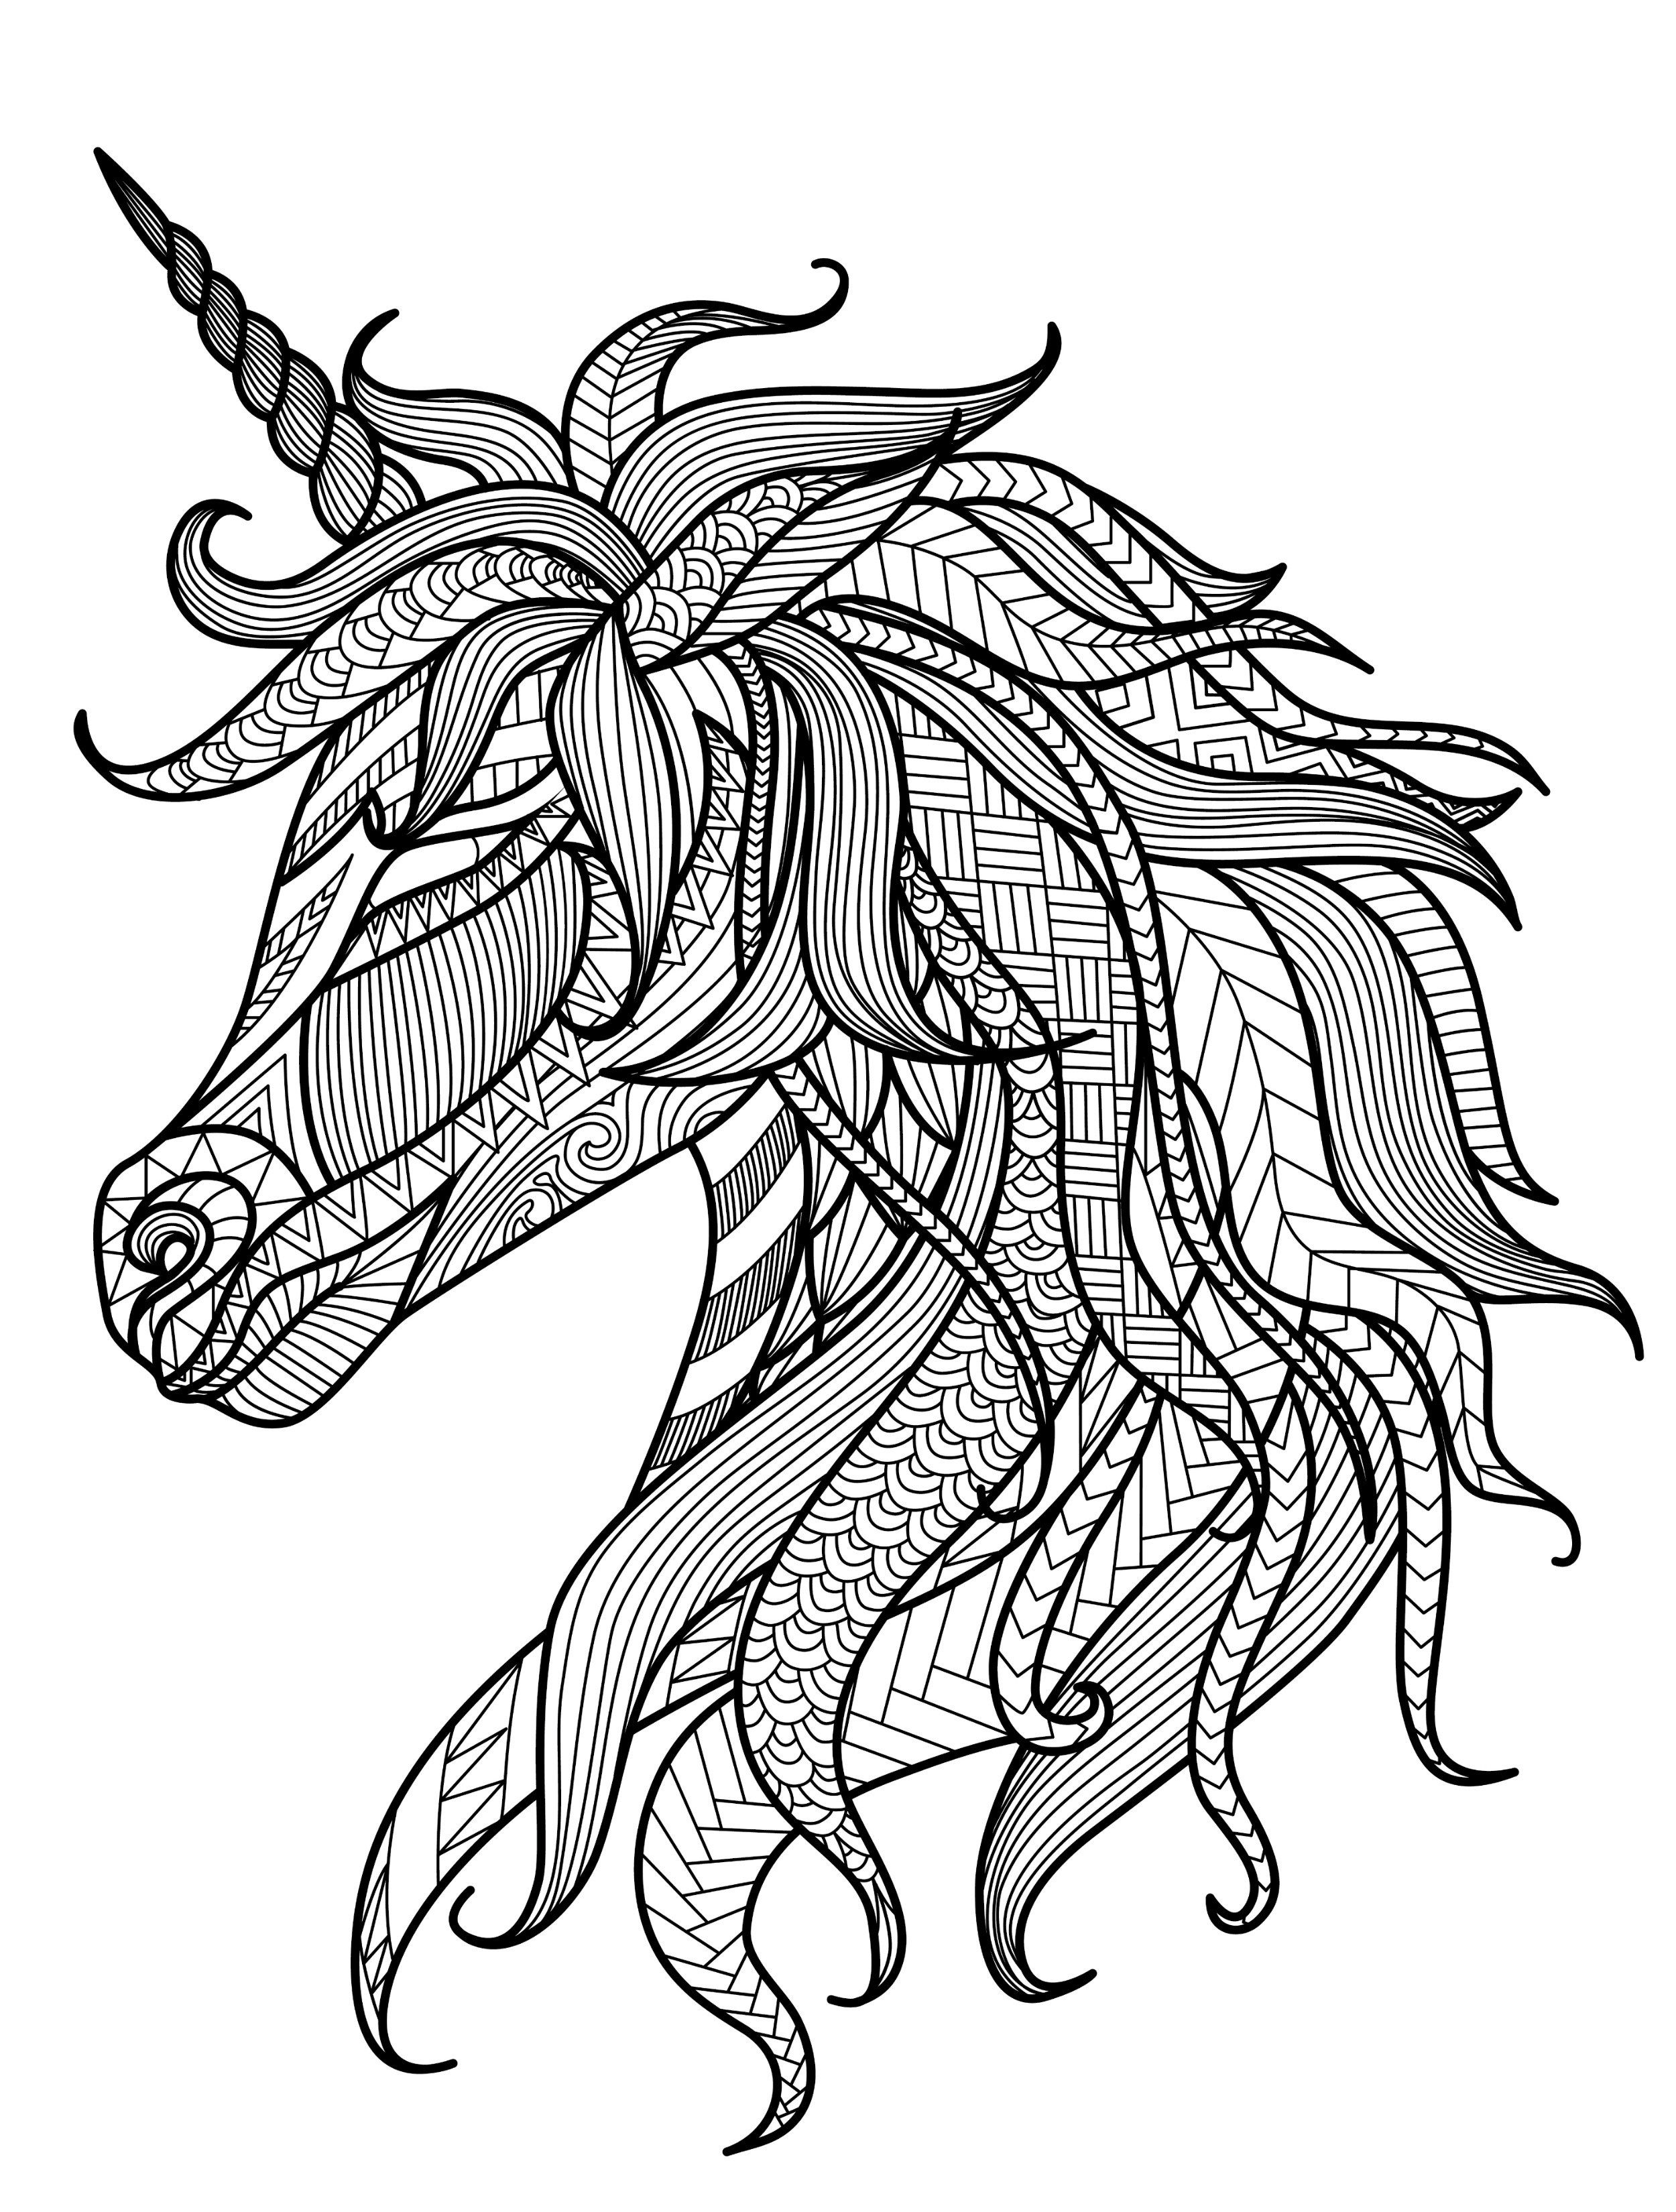 Unicorn adult coloring page - free downloadable | Makenzie ...